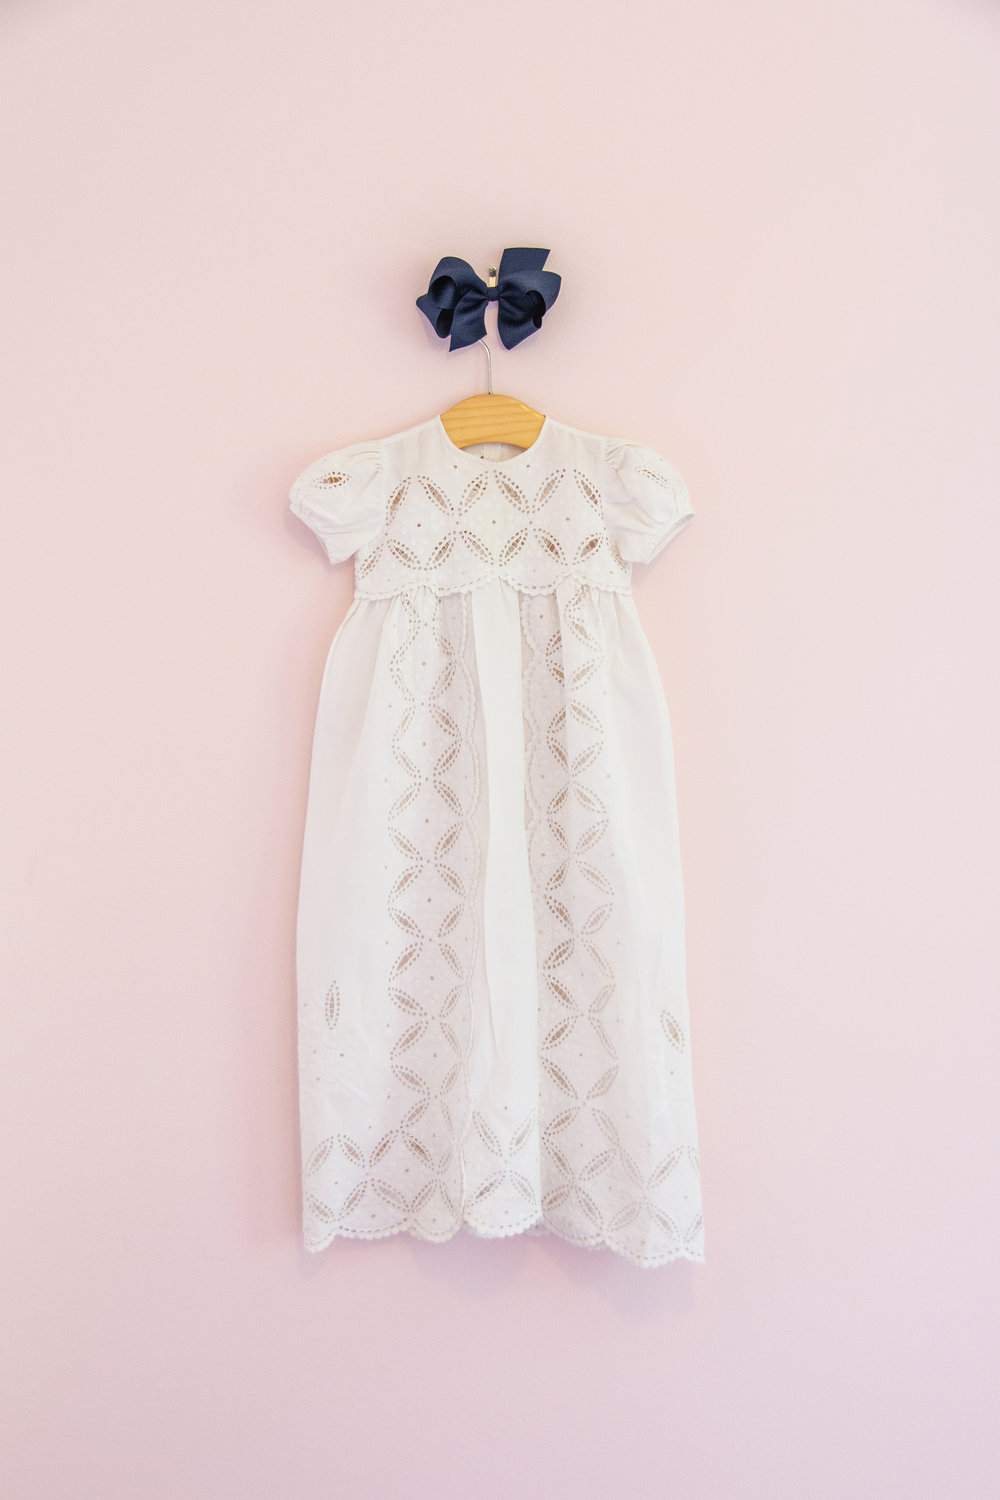 FAMILY TREASURE—The fabric of this christening gown forms a pattern of love knitting together generation after generation of one family.